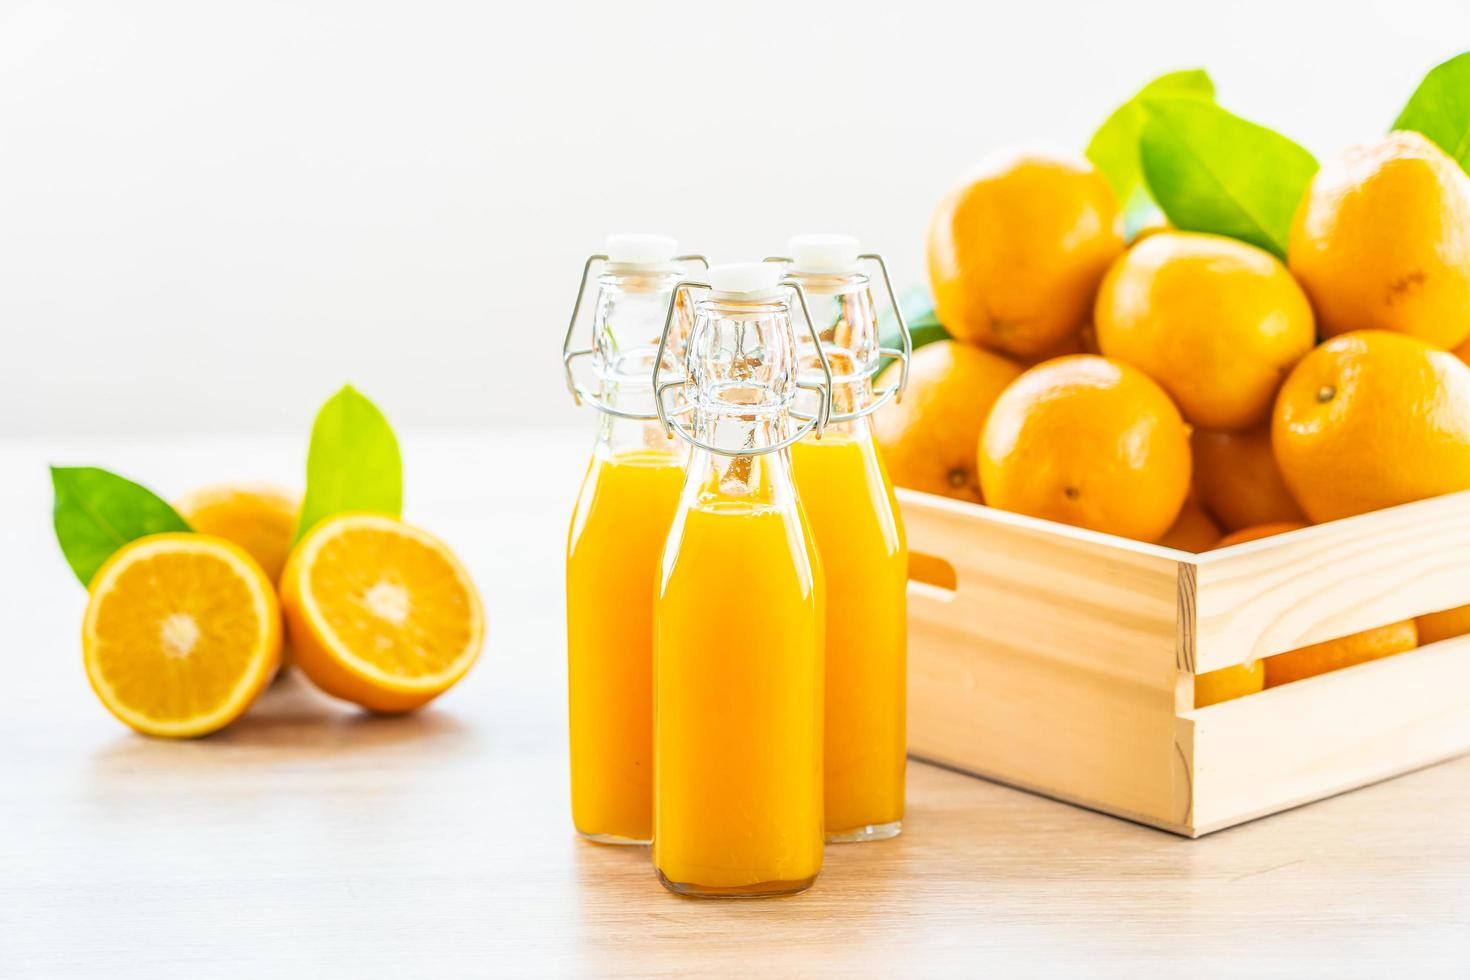 jus d'orange frais et oranges photo